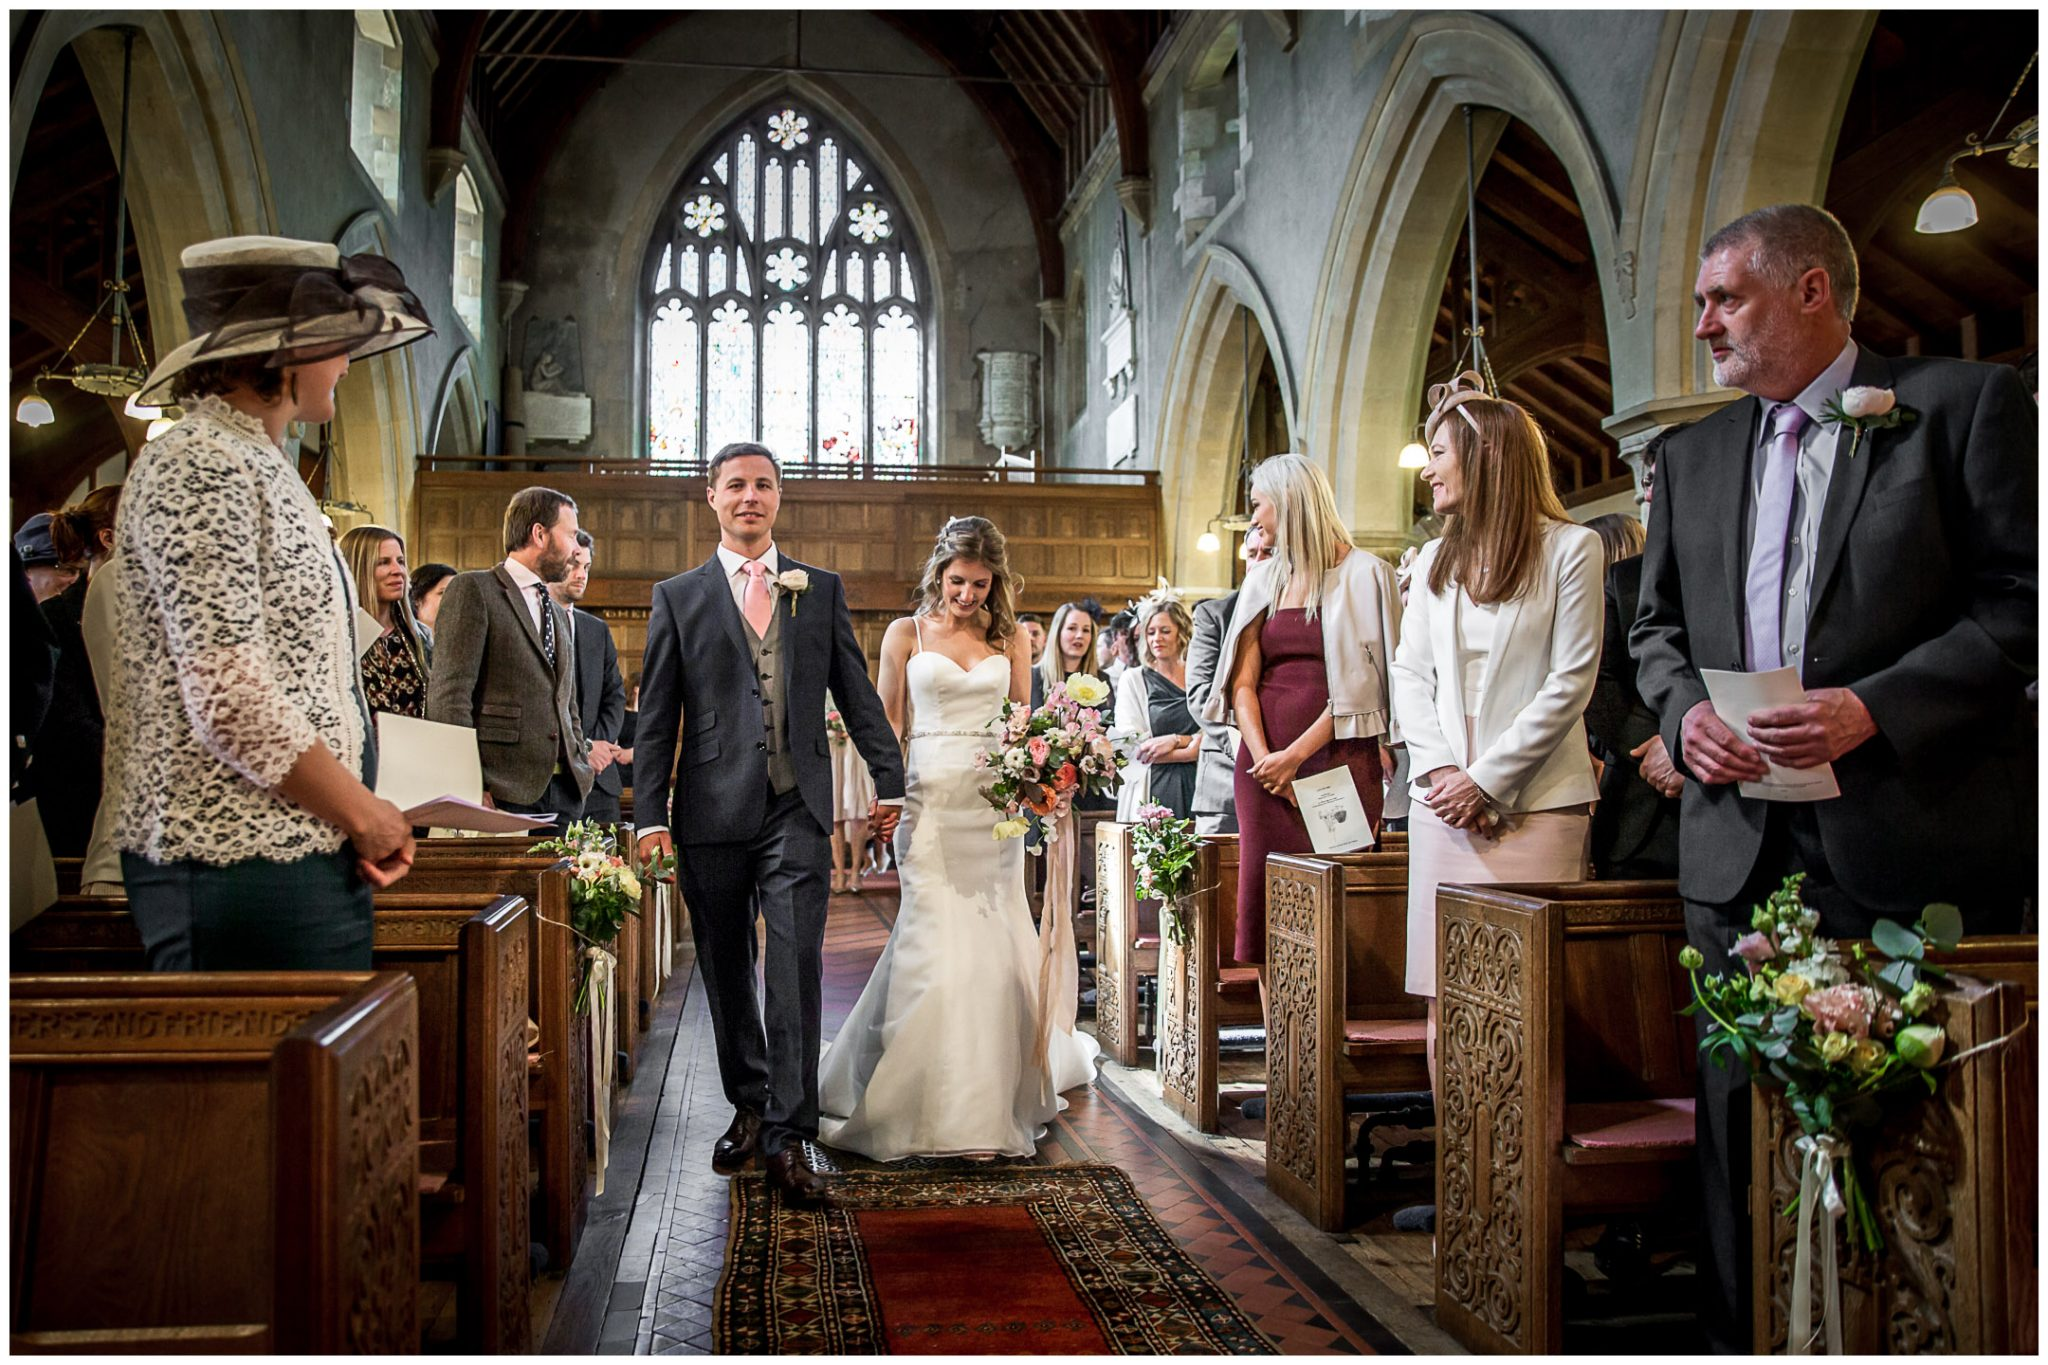 Bride and groom arrive at Twyford church and walk down the aisle